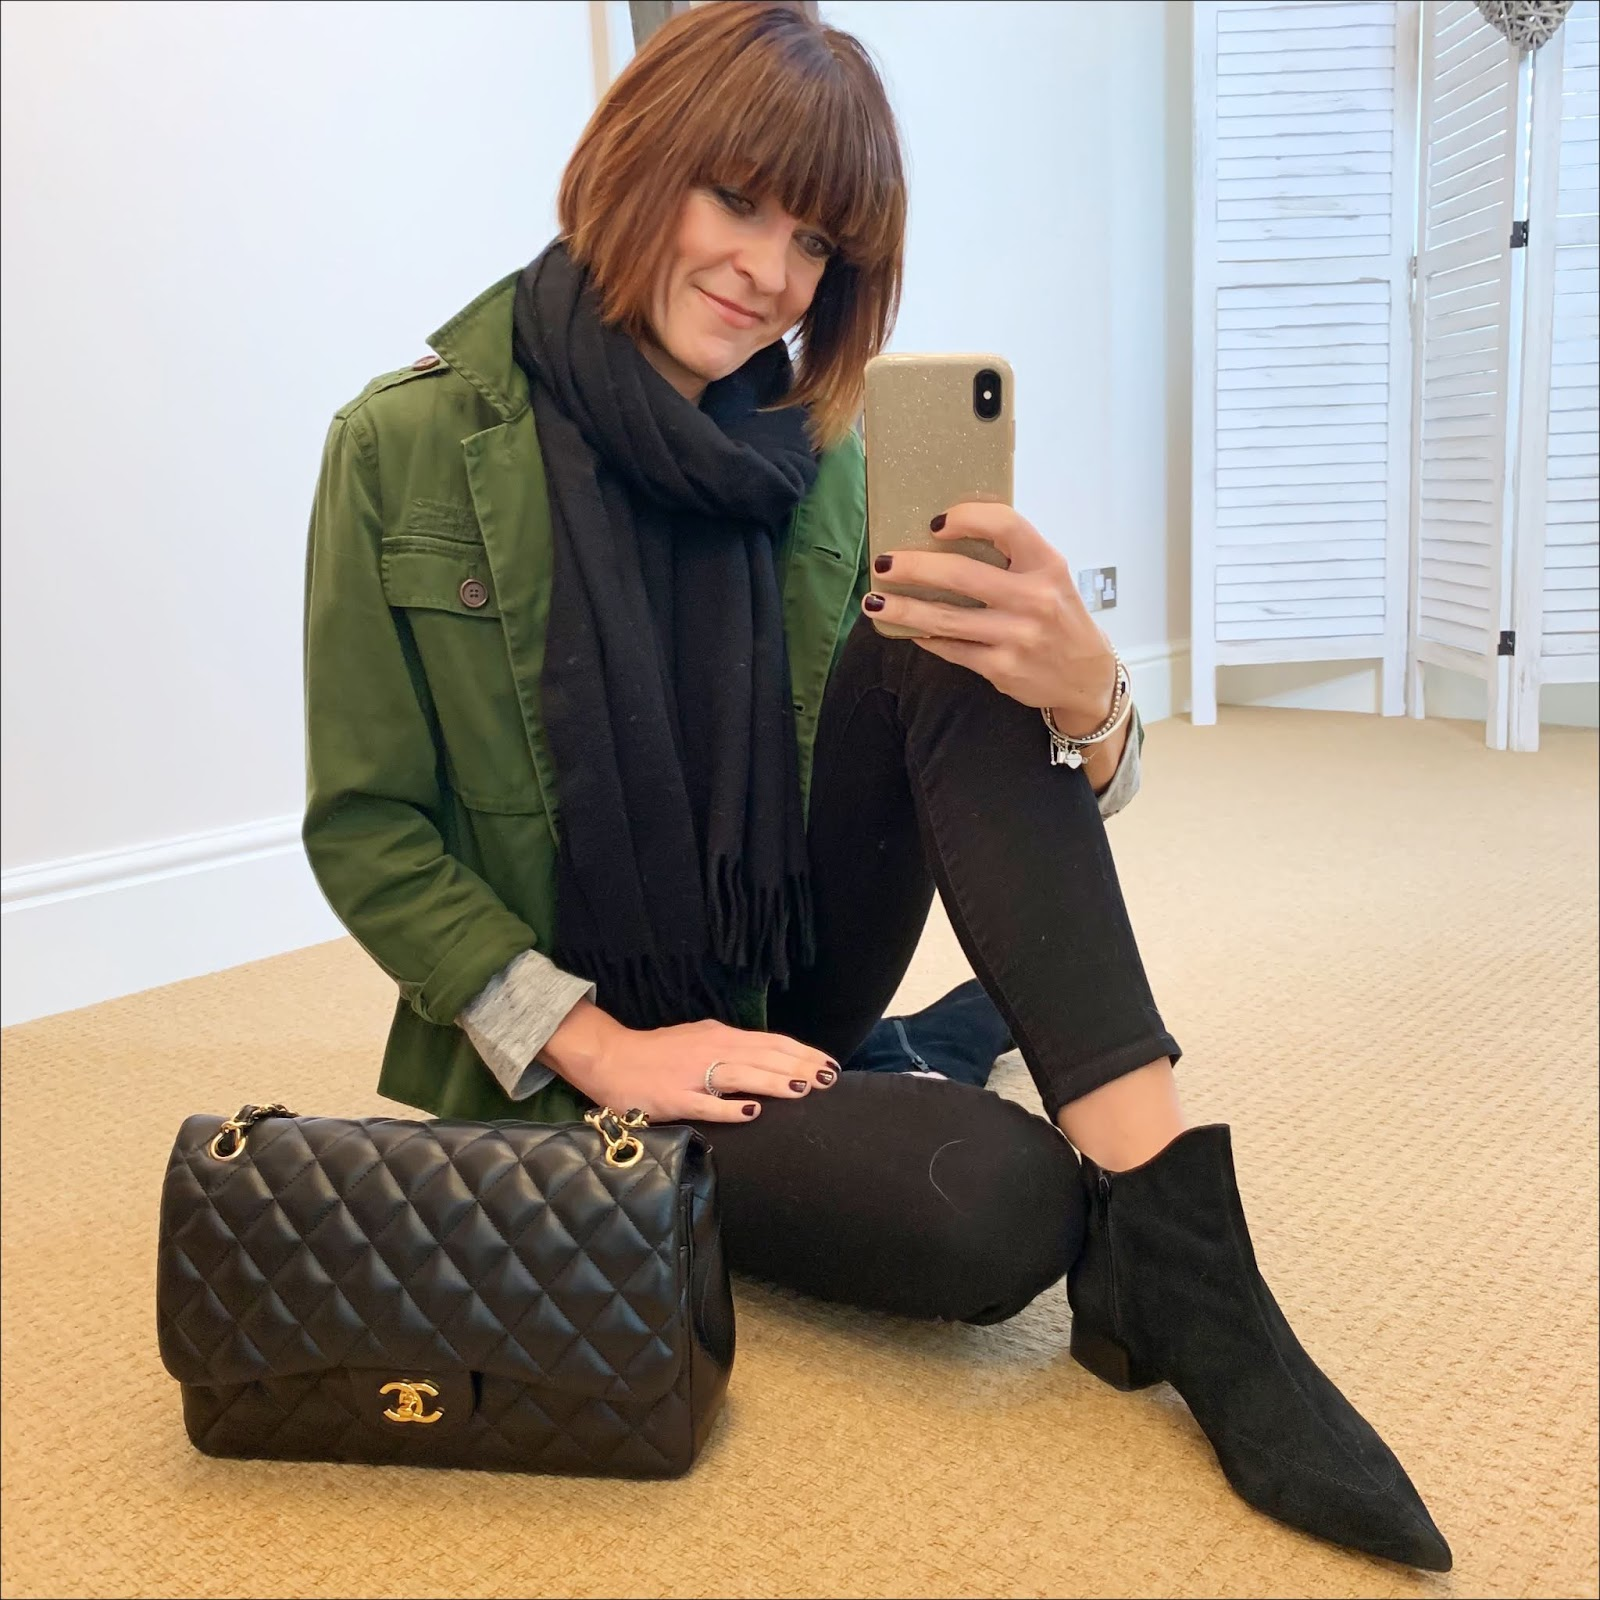 my midlife fashion, j crew cotton overshirt, alexander wang linen t shirt, chanel quilted bag, j crew 8 inch stretch true black jeans, acne studios canada wool scarf, find ark womens leather ankle boots